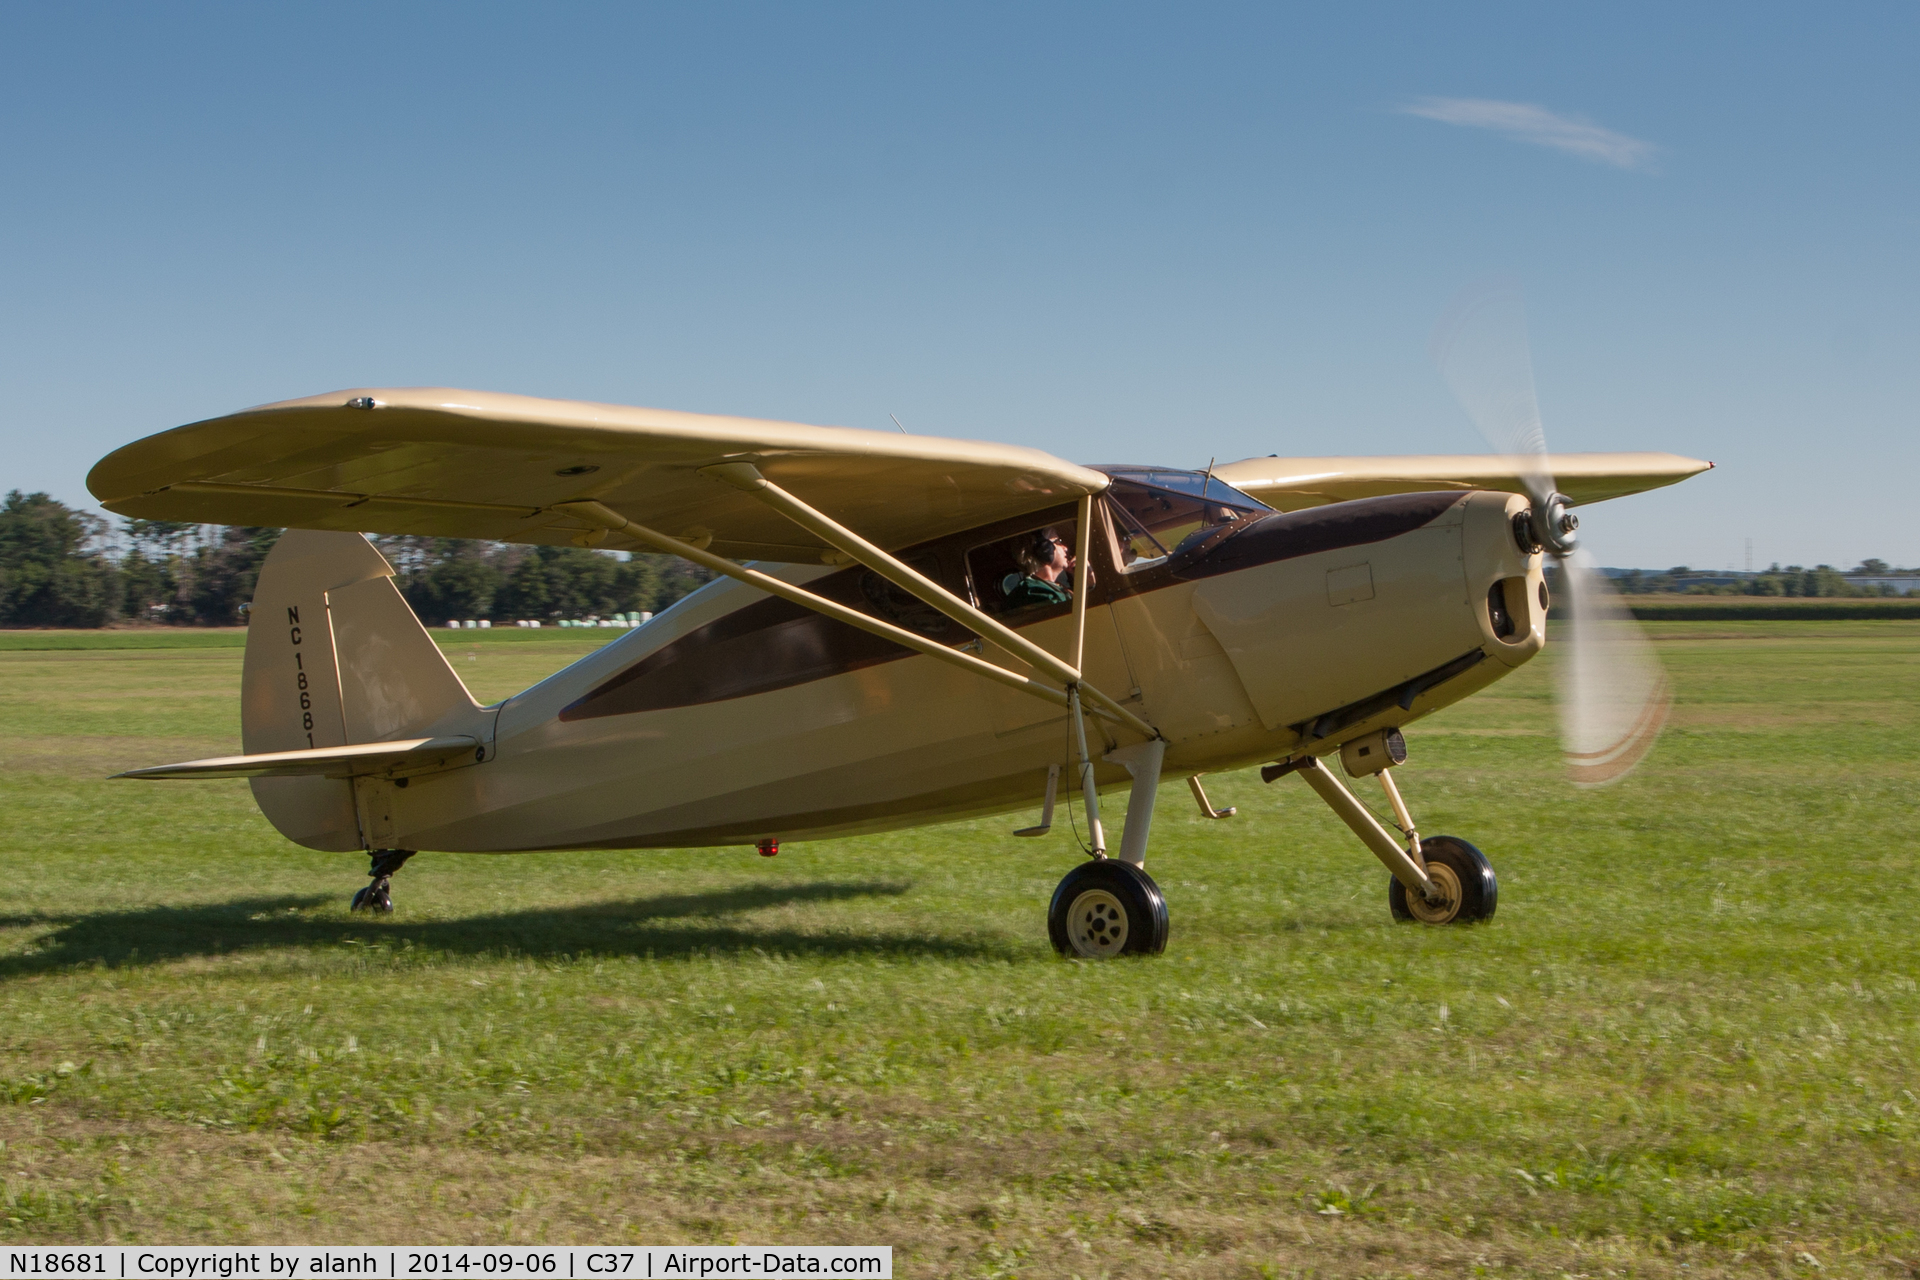 N18681, 1939 Fairchild 24 K C/N 3324, Arriving at the 2014 MAAA Grassroots fly-in